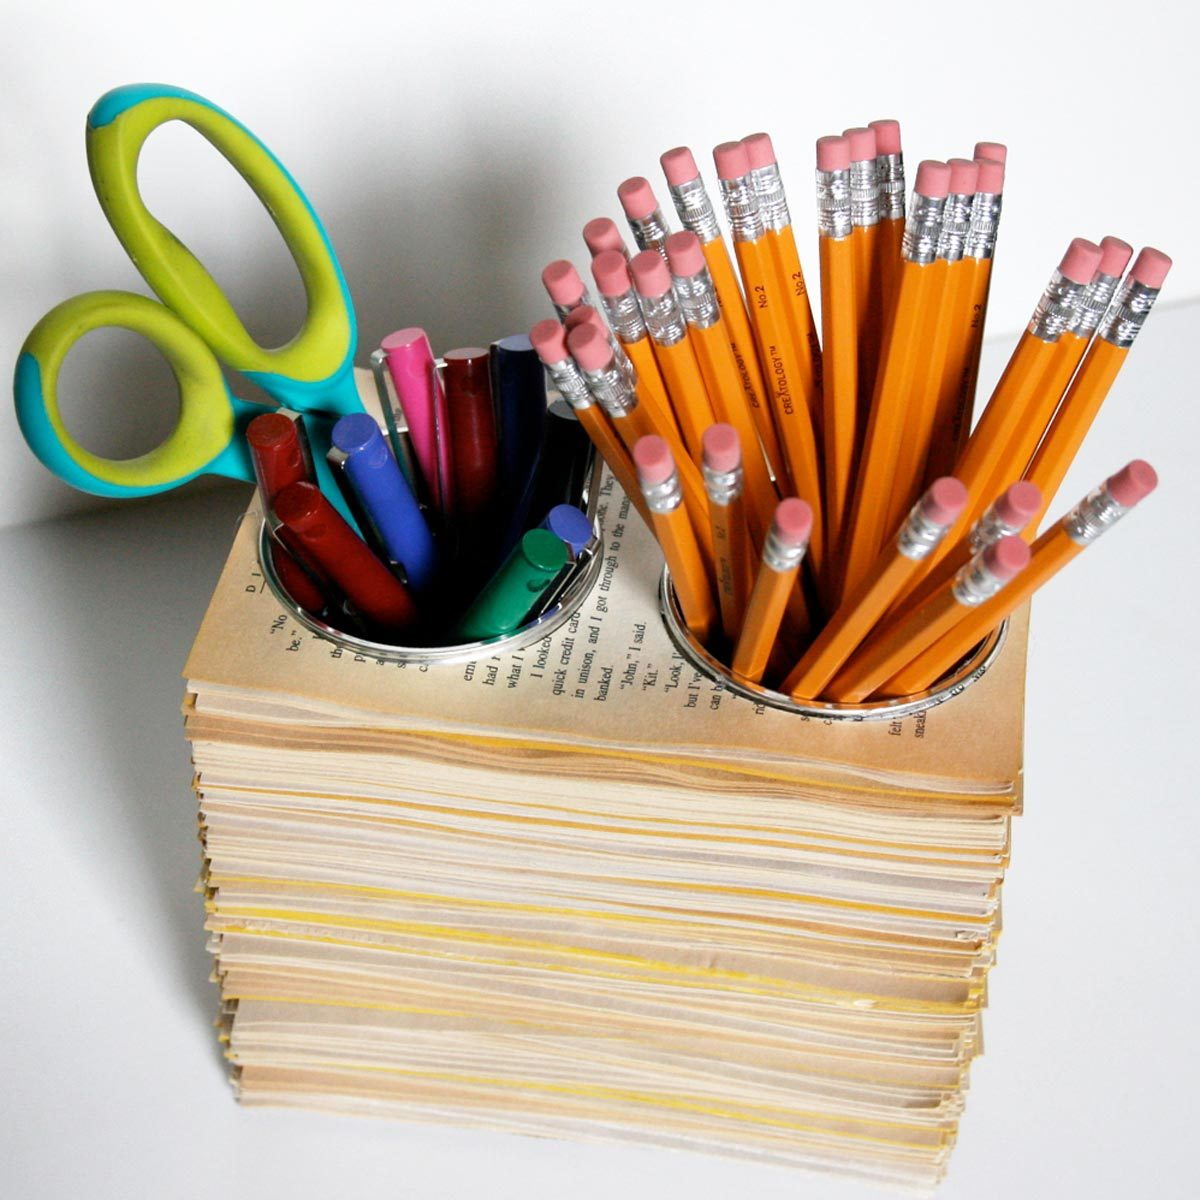 Homemade Pencil Holders 80 Old Items Fantastically Fit For Repurposing The Family Handyman